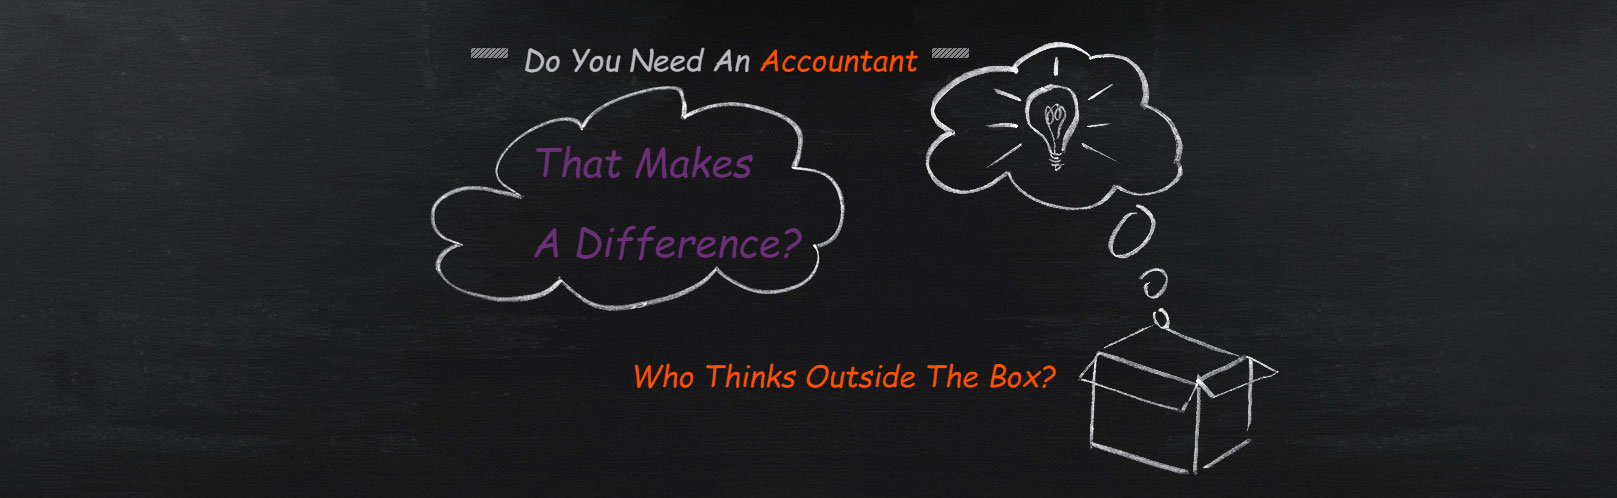 Xebra Accounting - Accountants Fareham